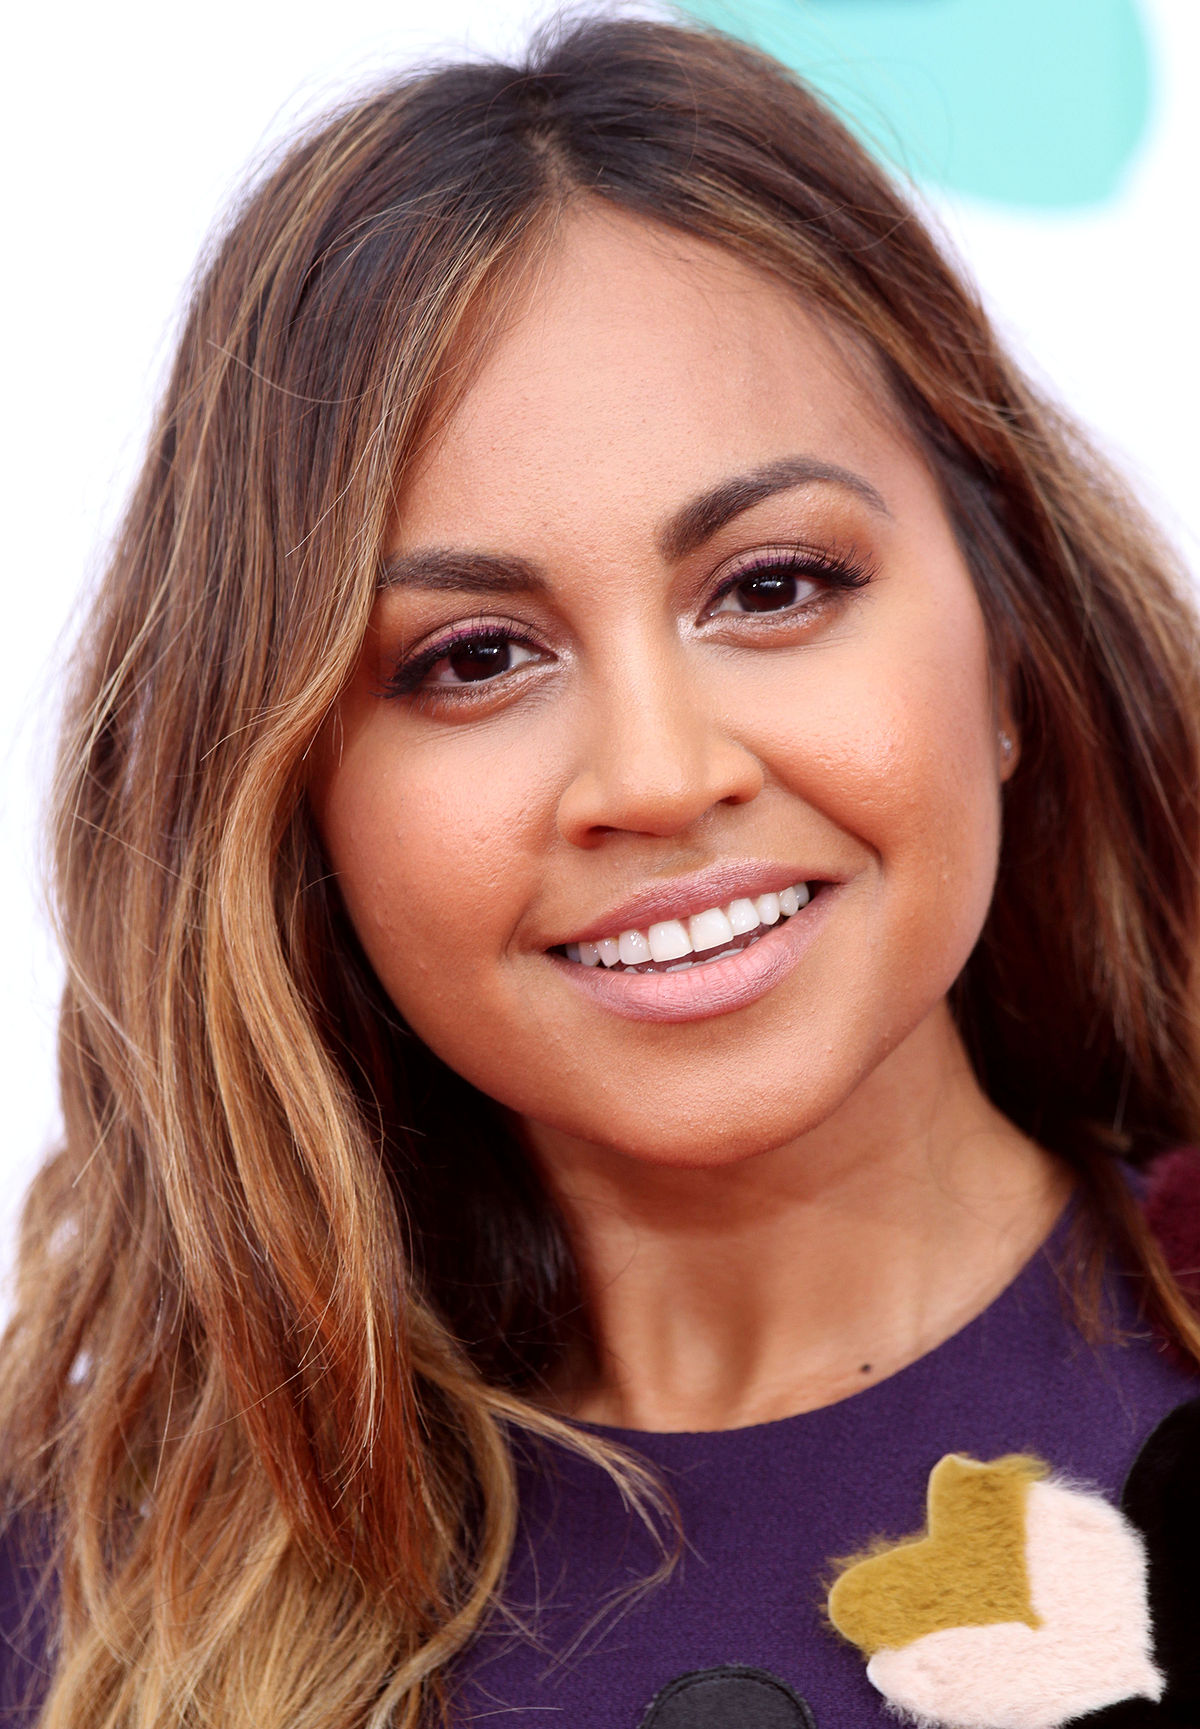 Jessica Mauboy nude photos 2019